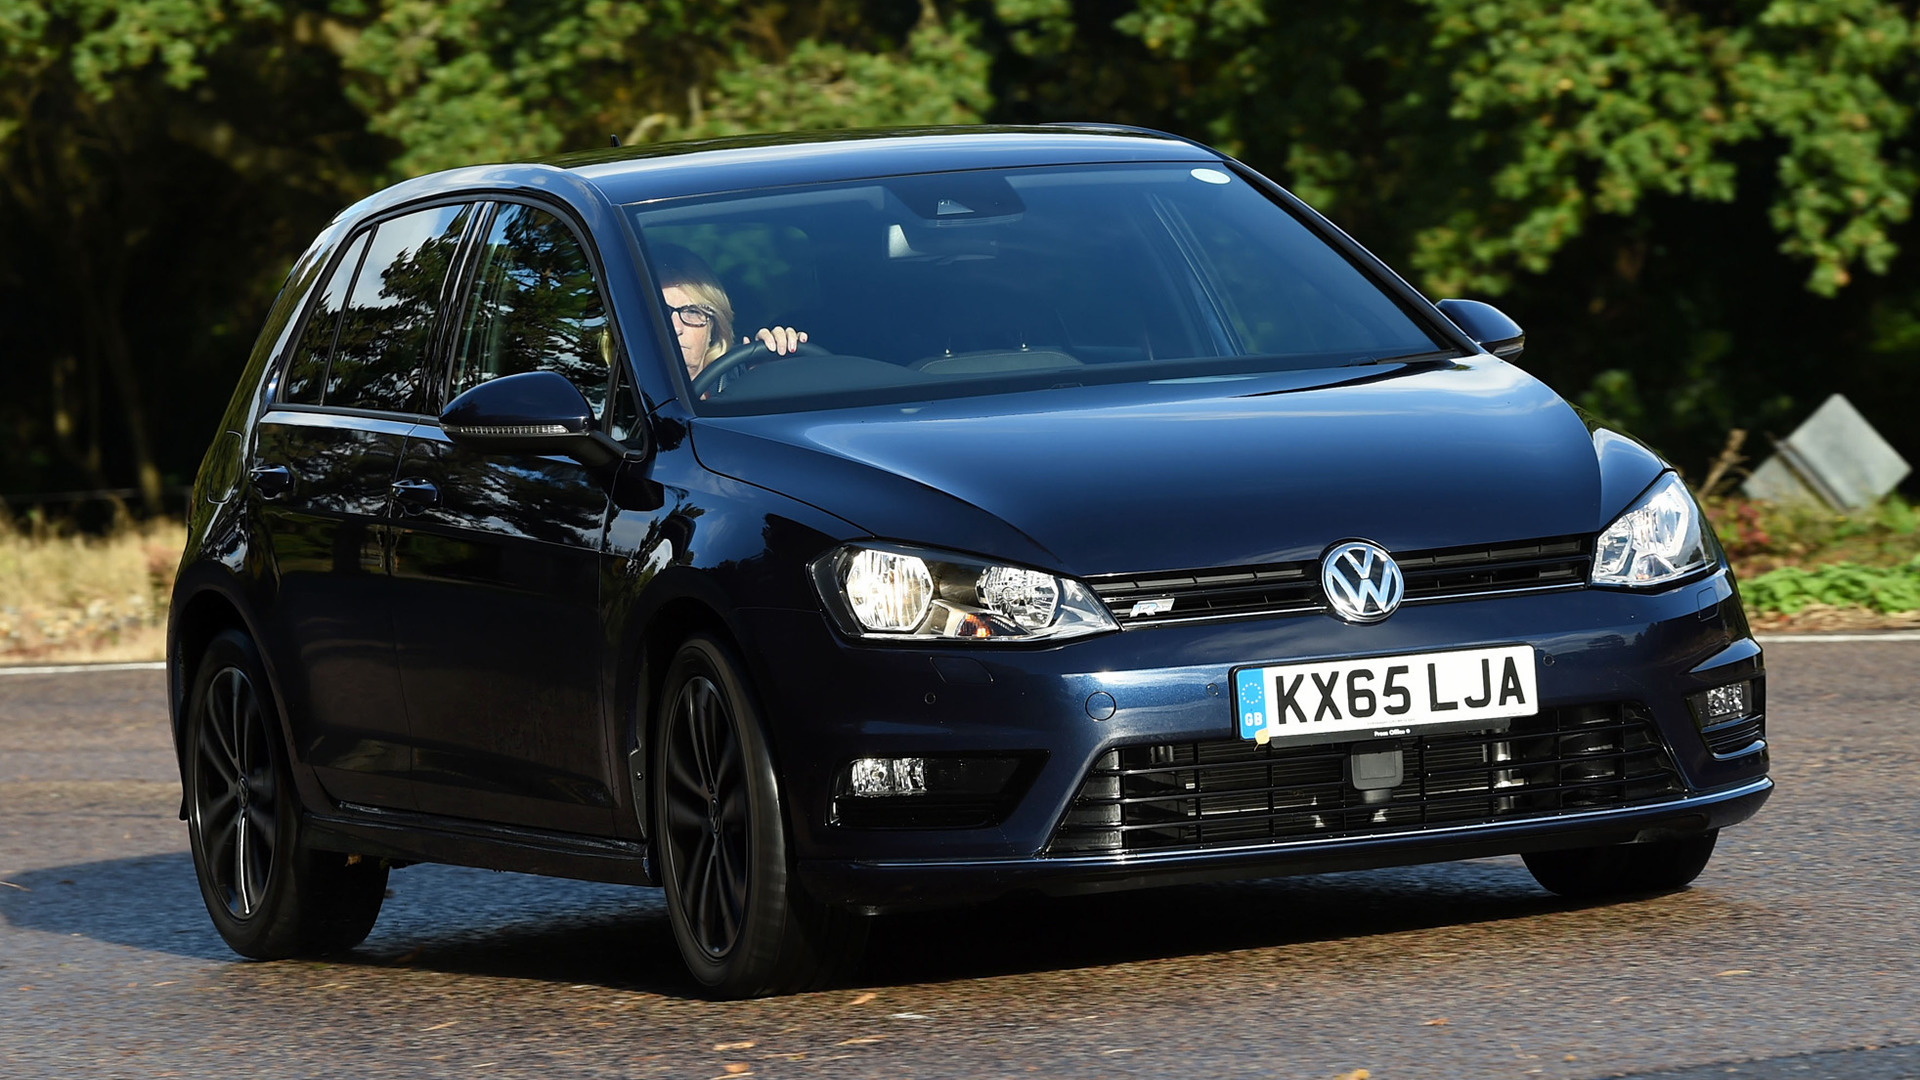 volkswagen golf r line 5 door 2013 uk wallpapers and hd images car pixel. Black Bedroom Furniture Sets. Home Design Ideas